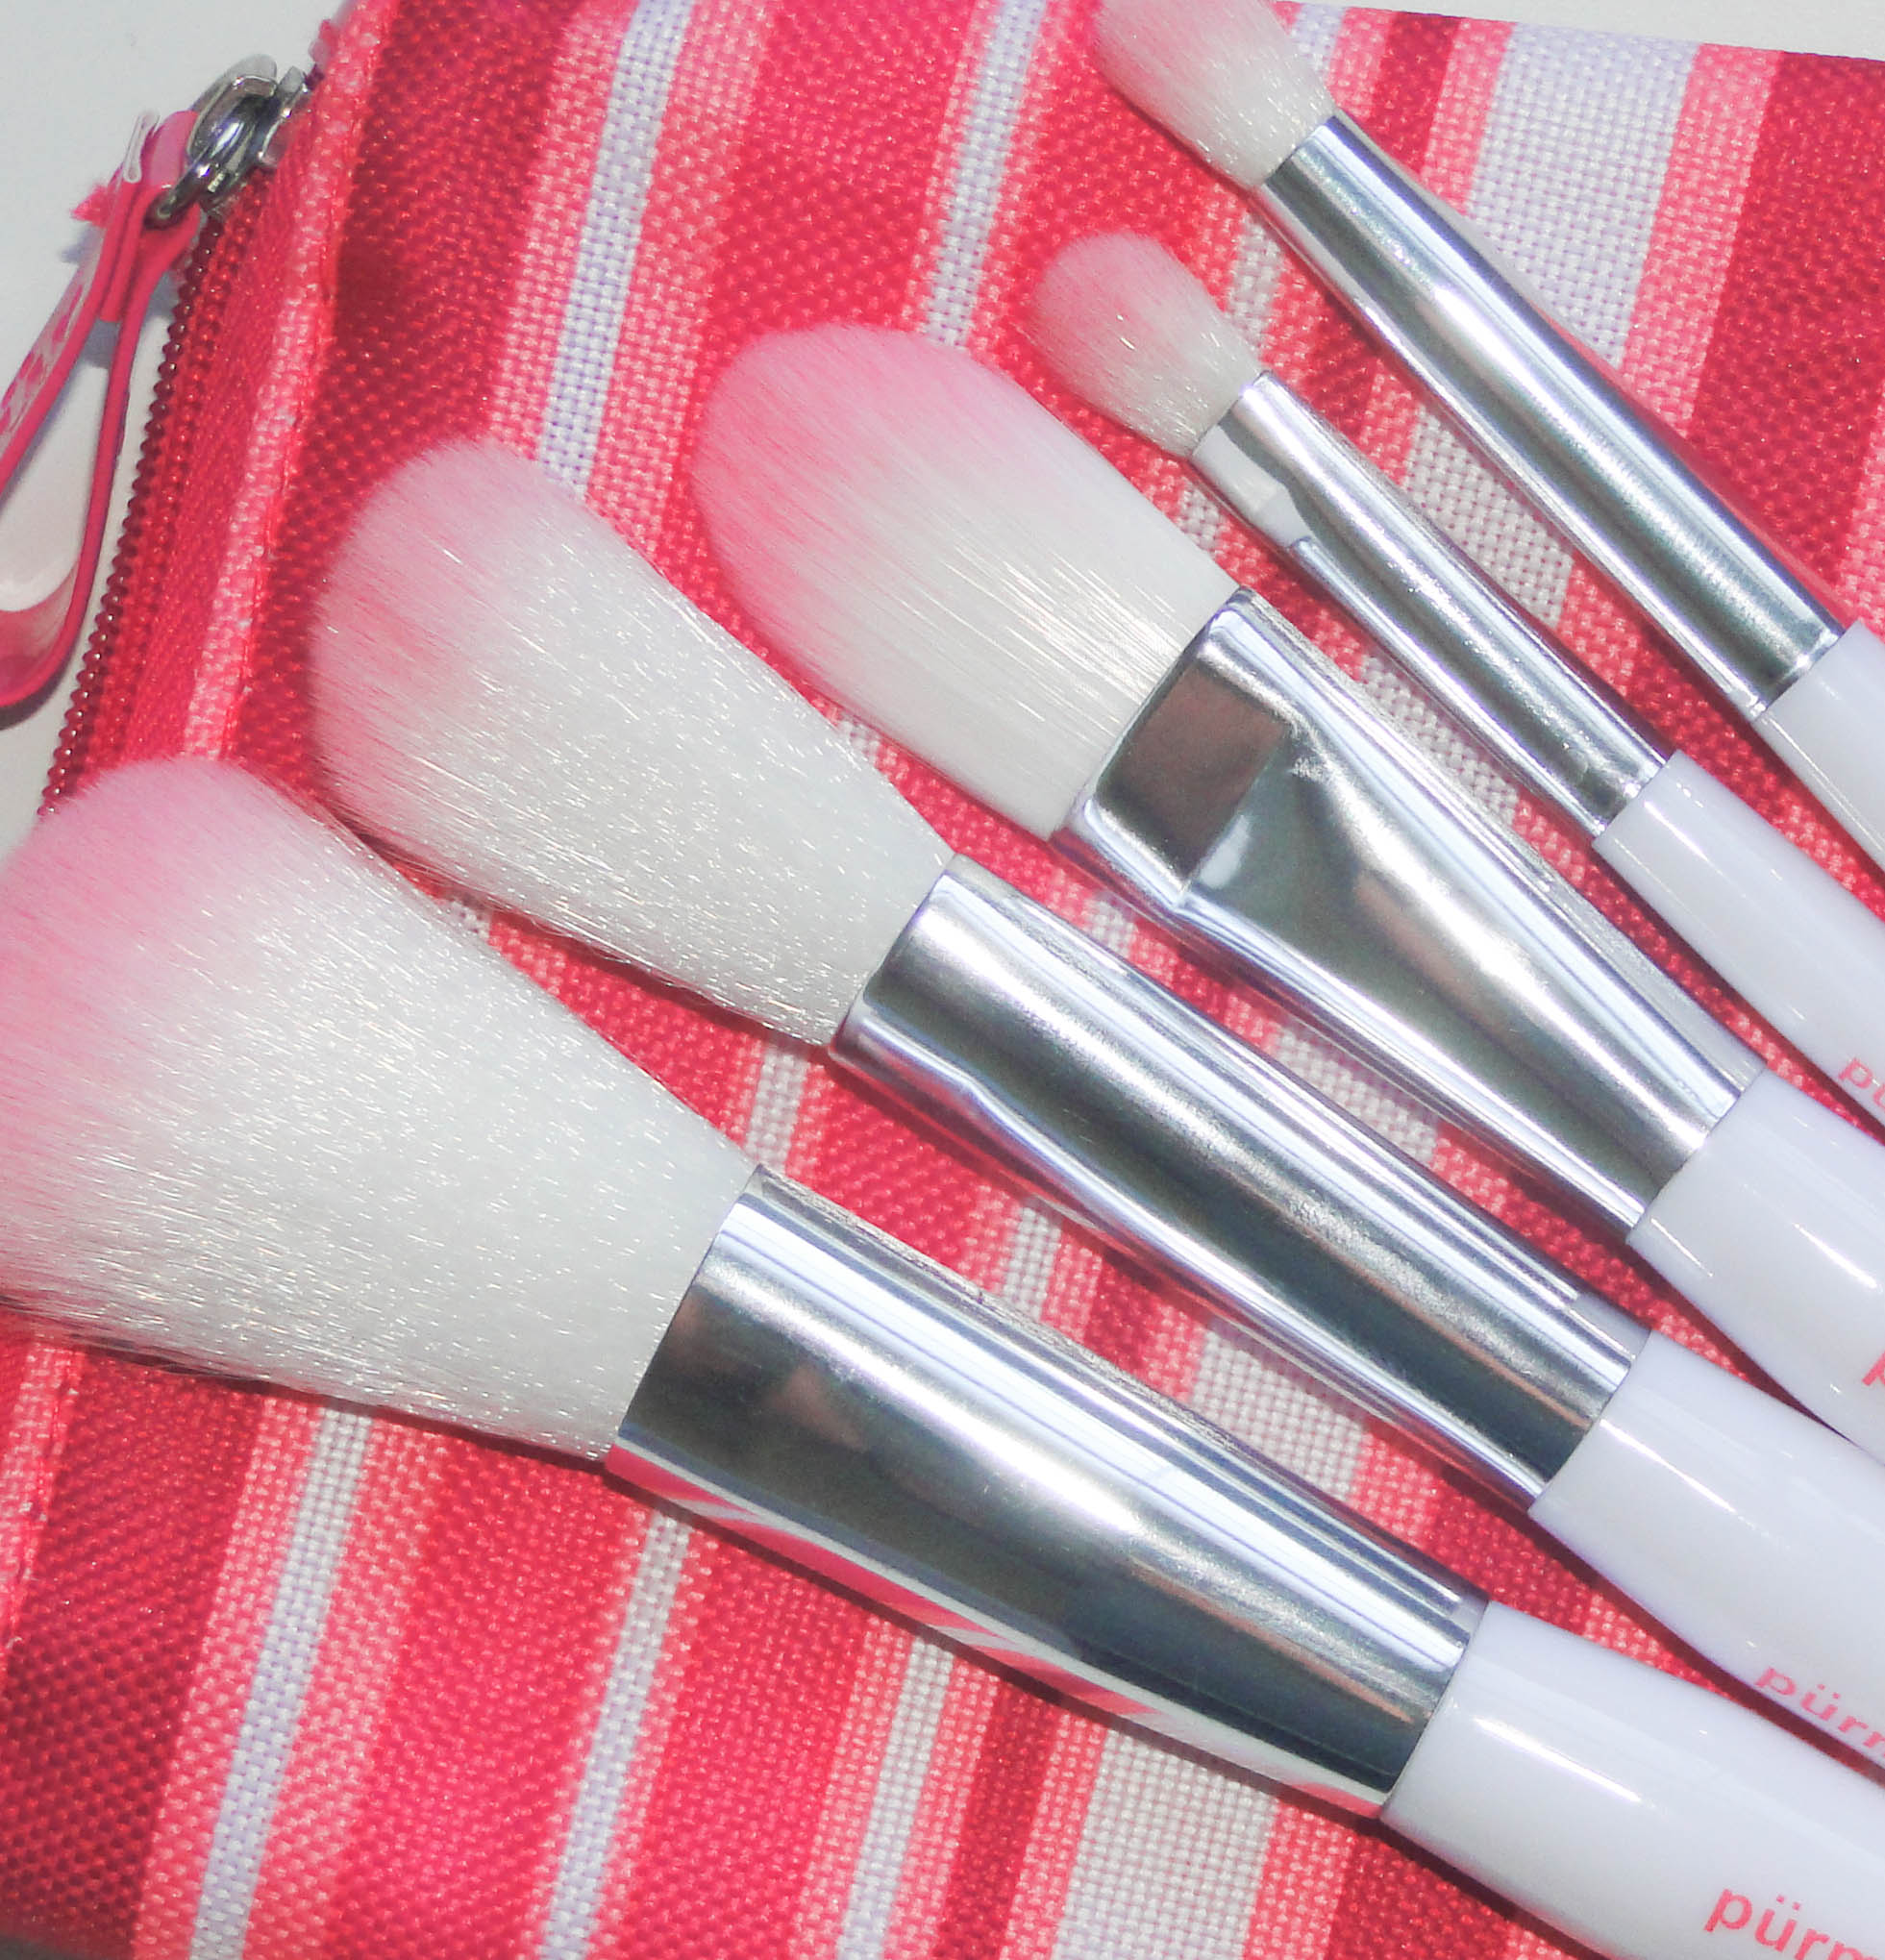 Pur Minerals Magic Wands Brush Collection